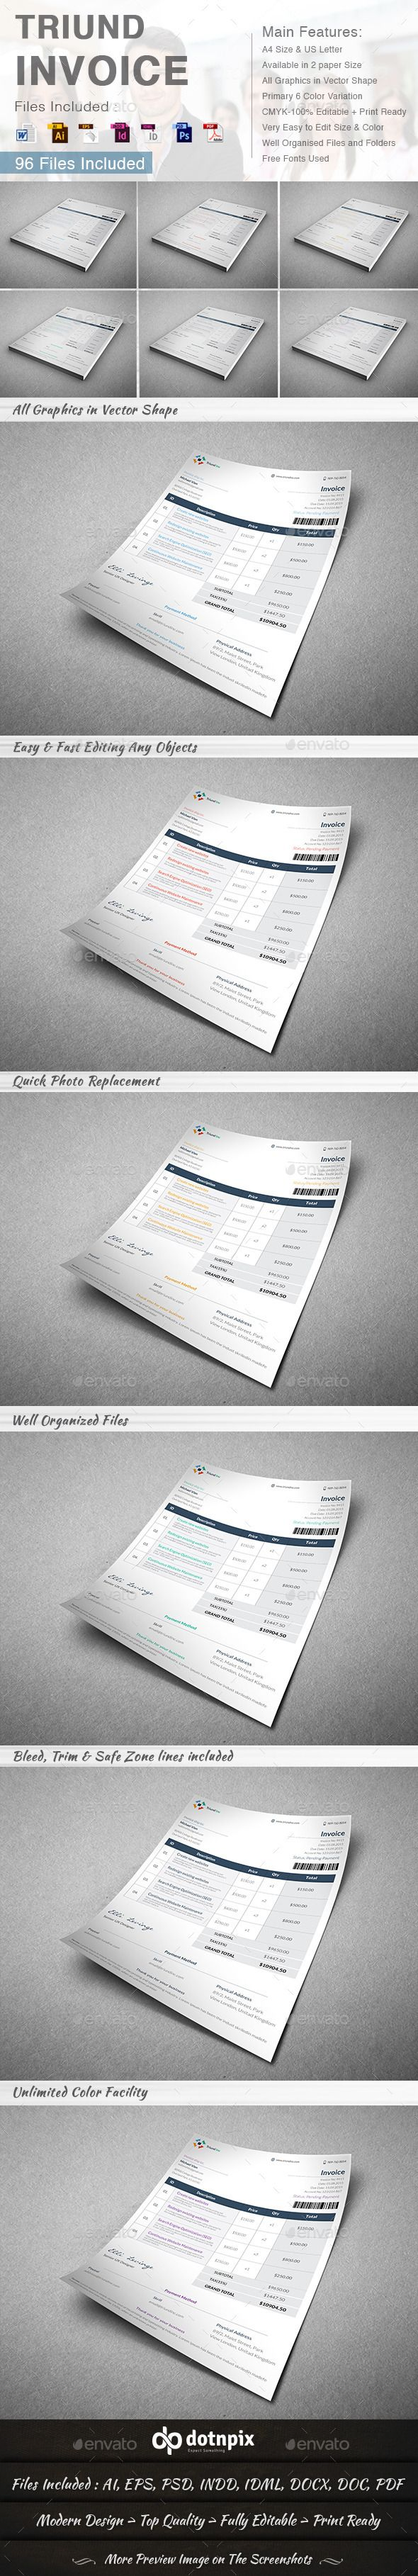 how to create a proposal template in word%0A Triund Invoice  Invoice DesignInvoice TemplateProposal